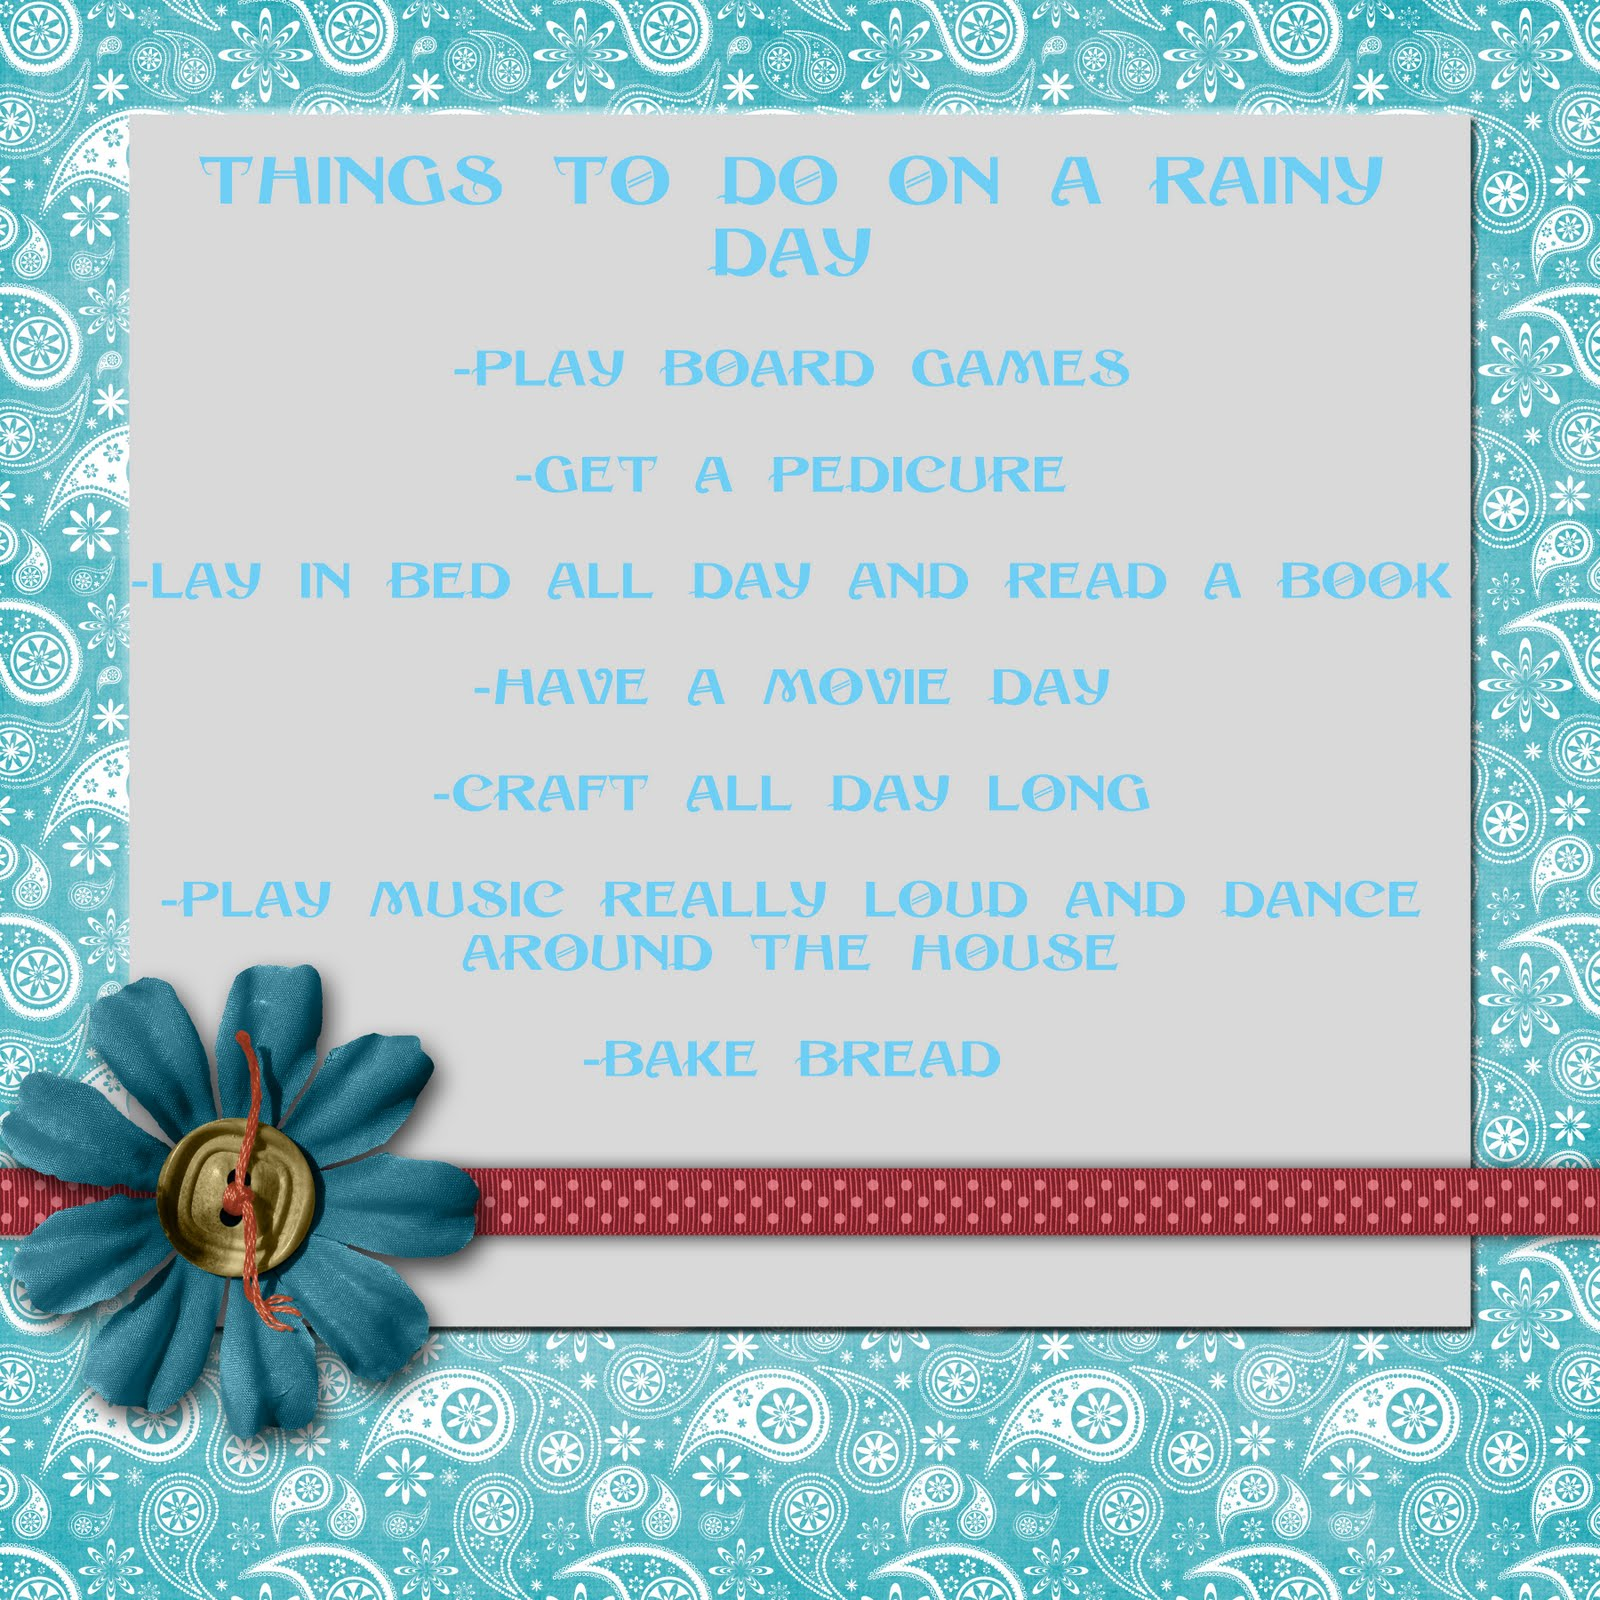 Rainy Day Adult Quotes: Rainy Day Quotes And Sayings. QuotesGram